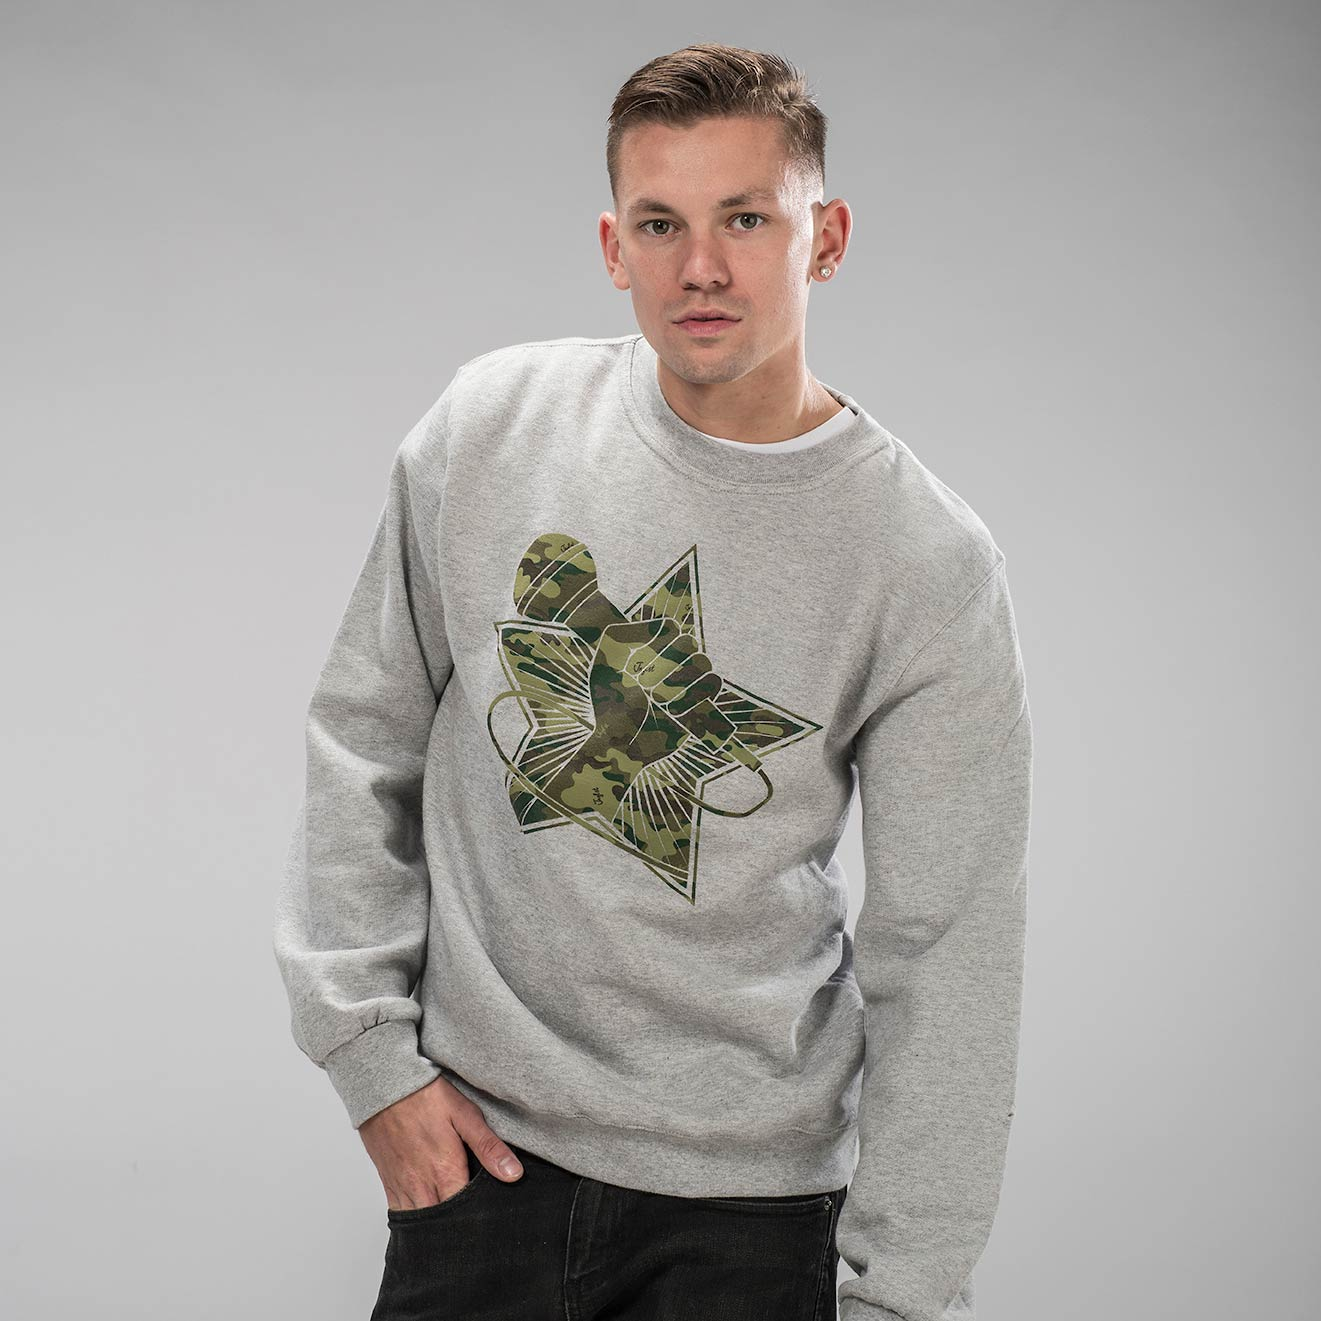 Junglist Revolution Camo Sweatshirt on Model